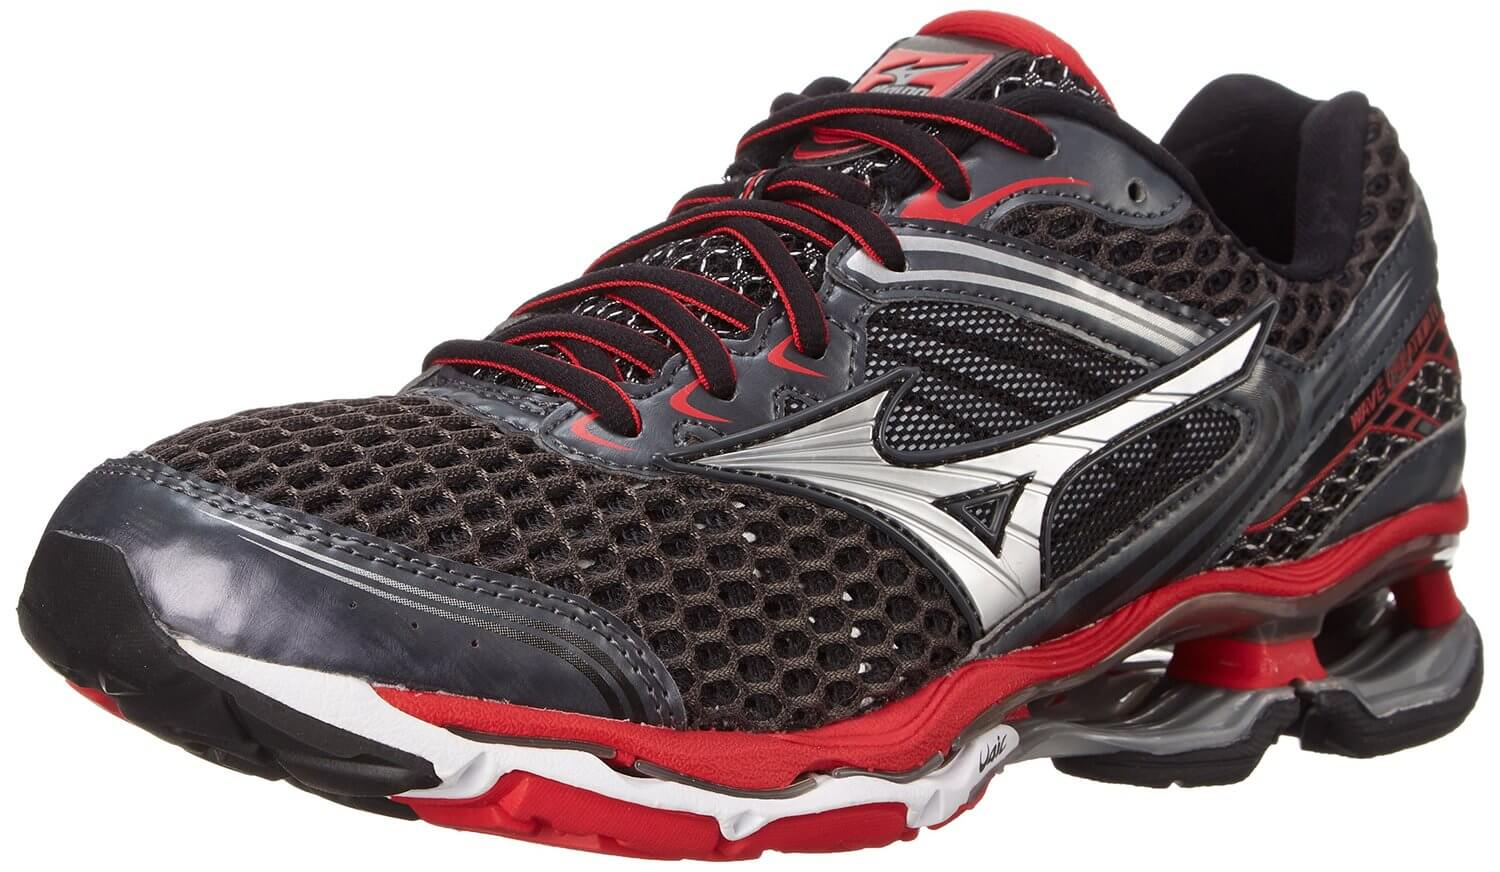 an in depth review of the mizuno wave creation 17 ... BCMZSJU